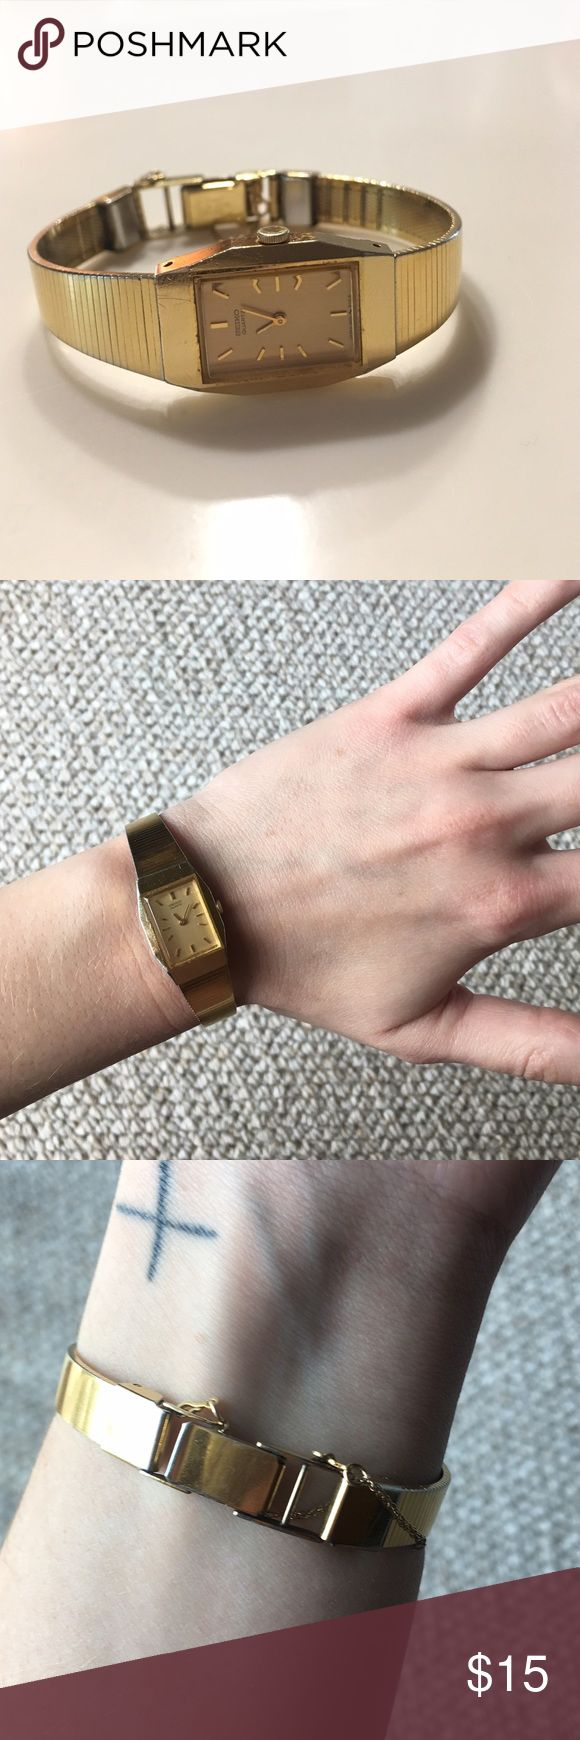 Seiko Gold Watch It's a small fit, but a pretty gold watch! Held together by a clasp and chain in the back. ⏰✨ (needs a new battery) Seiko Accessories Watches